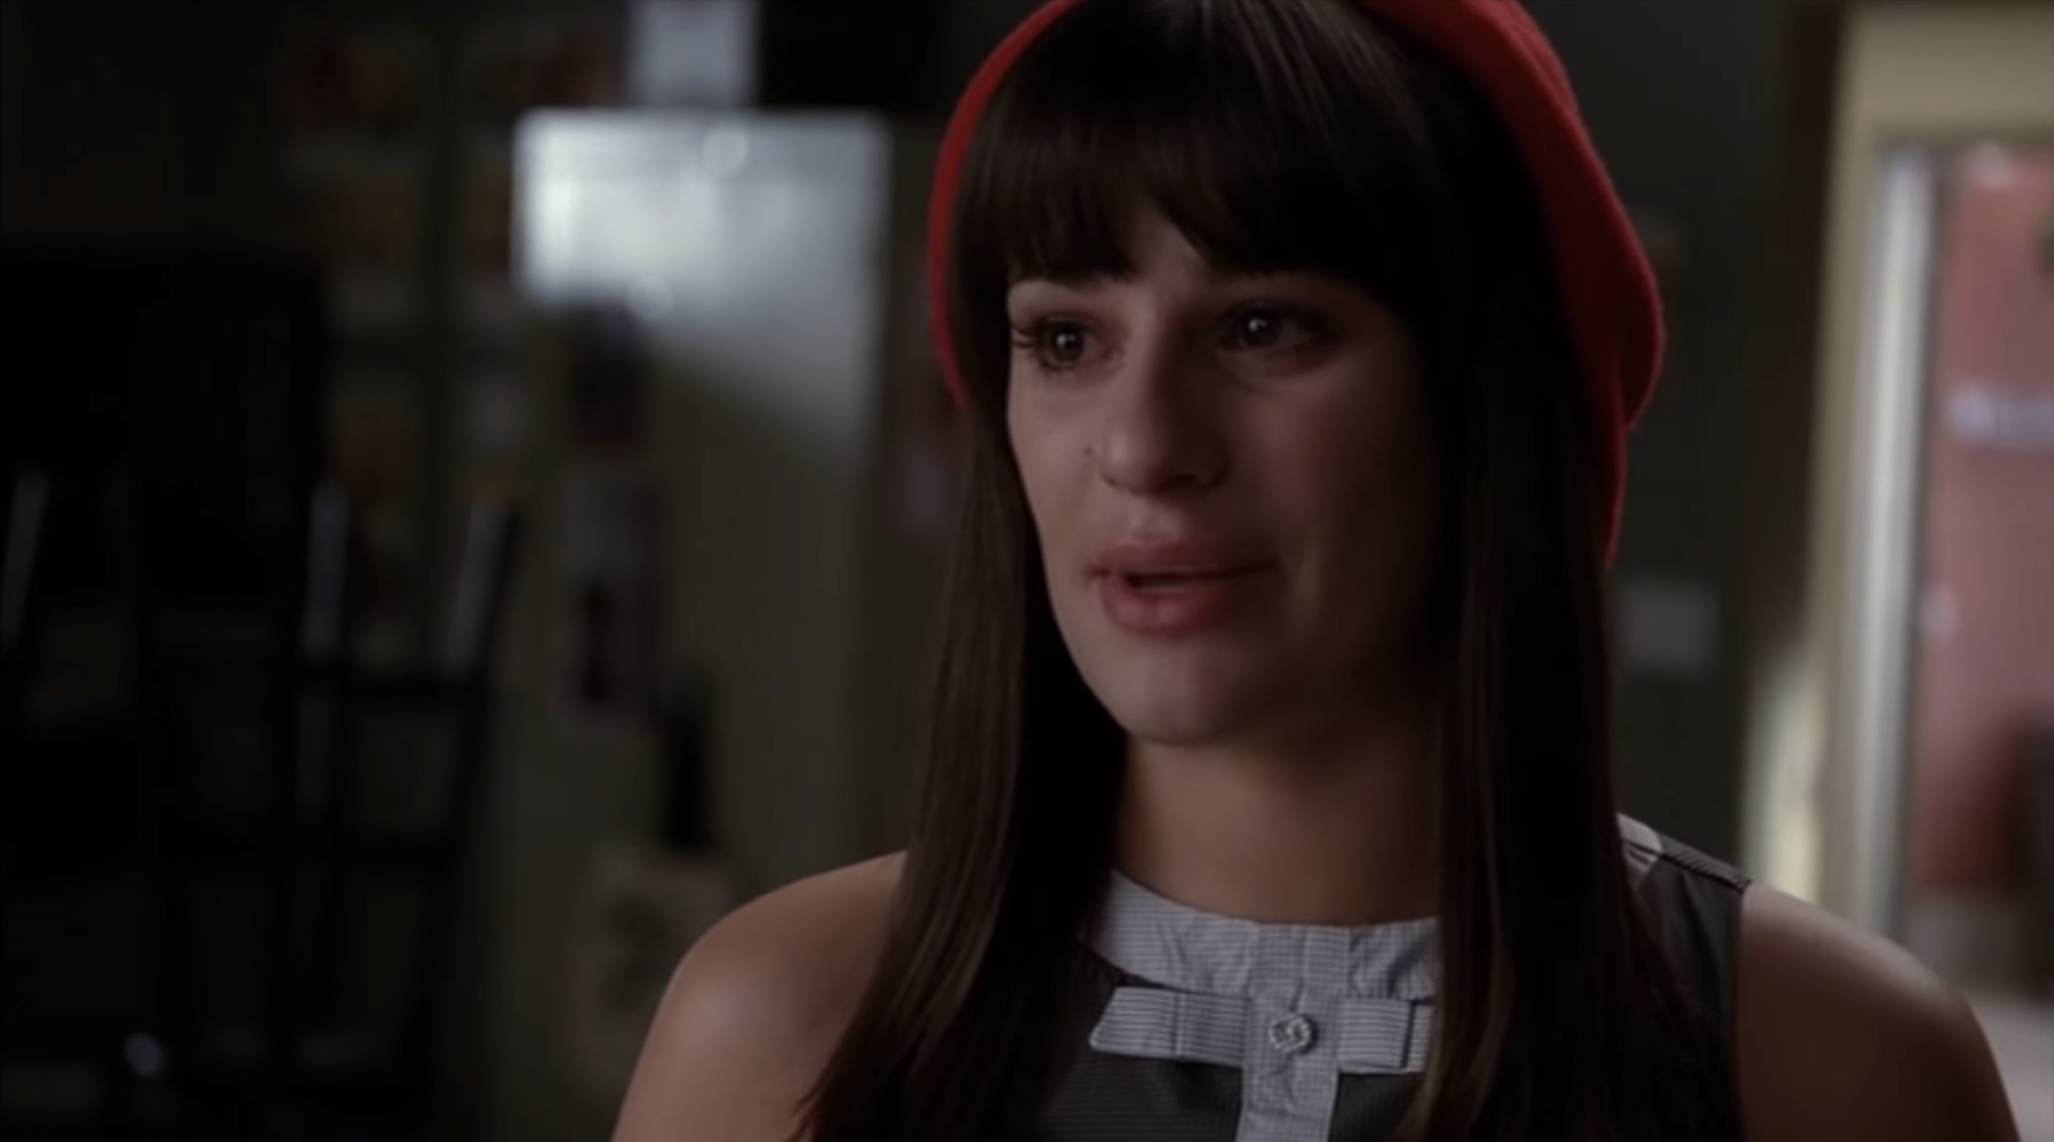 Rachel tearfully telling the glee club members she stuffed the ballot box.